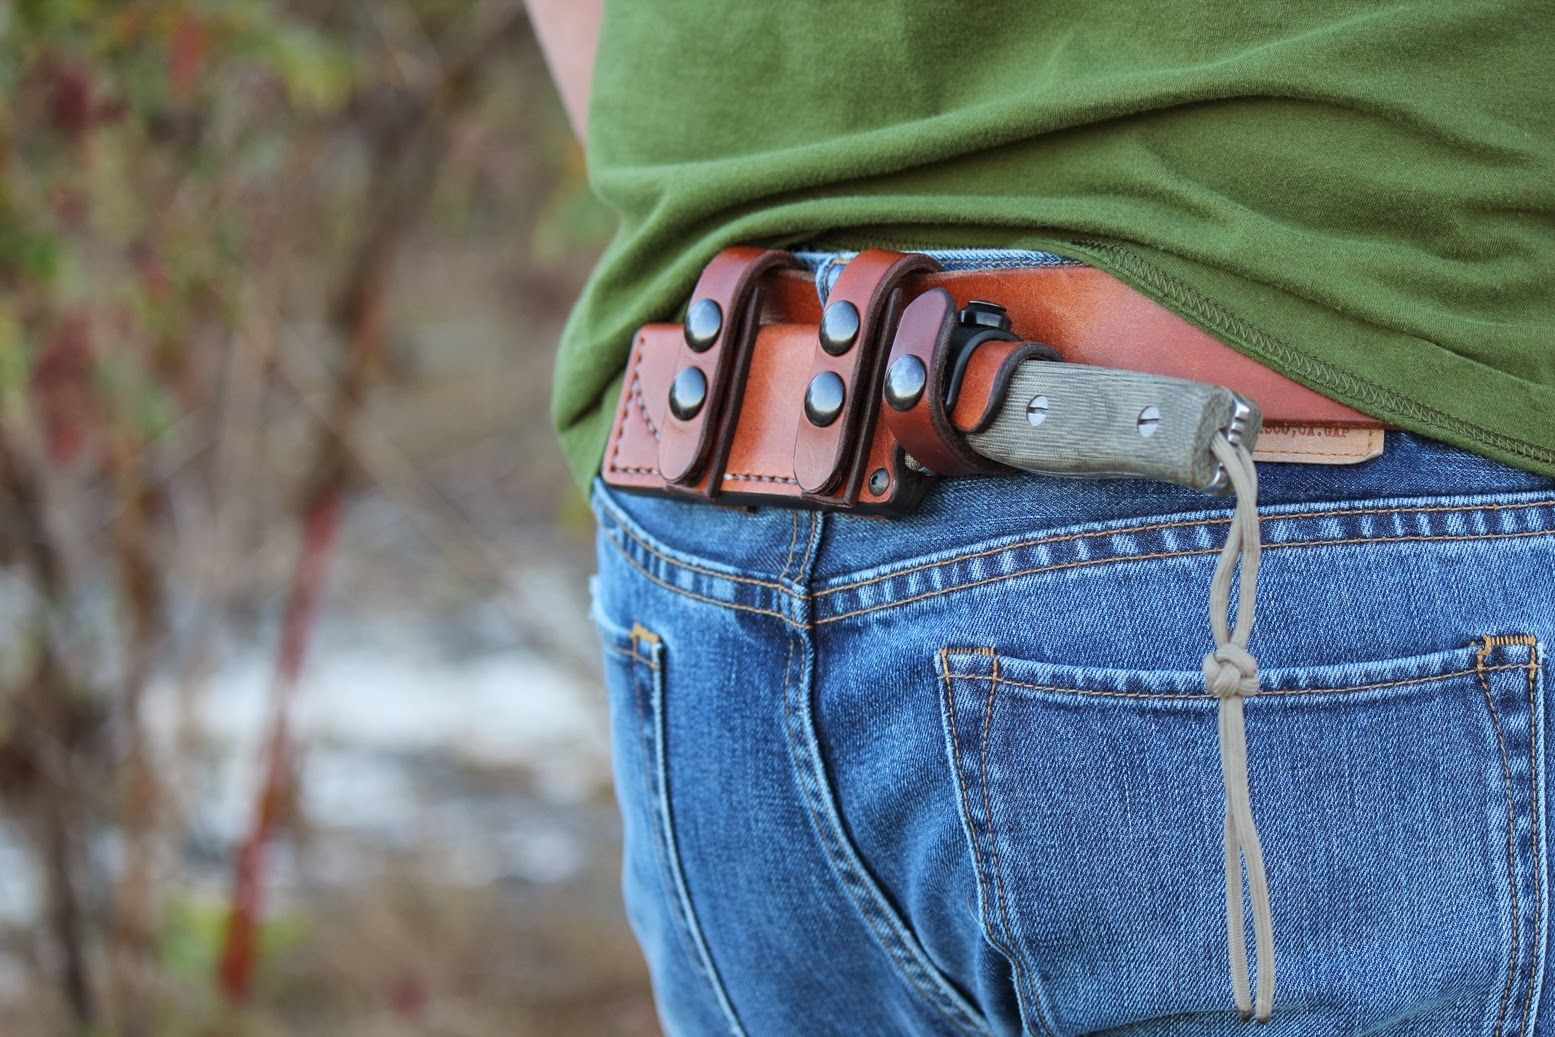 Horizontal belt knife holster